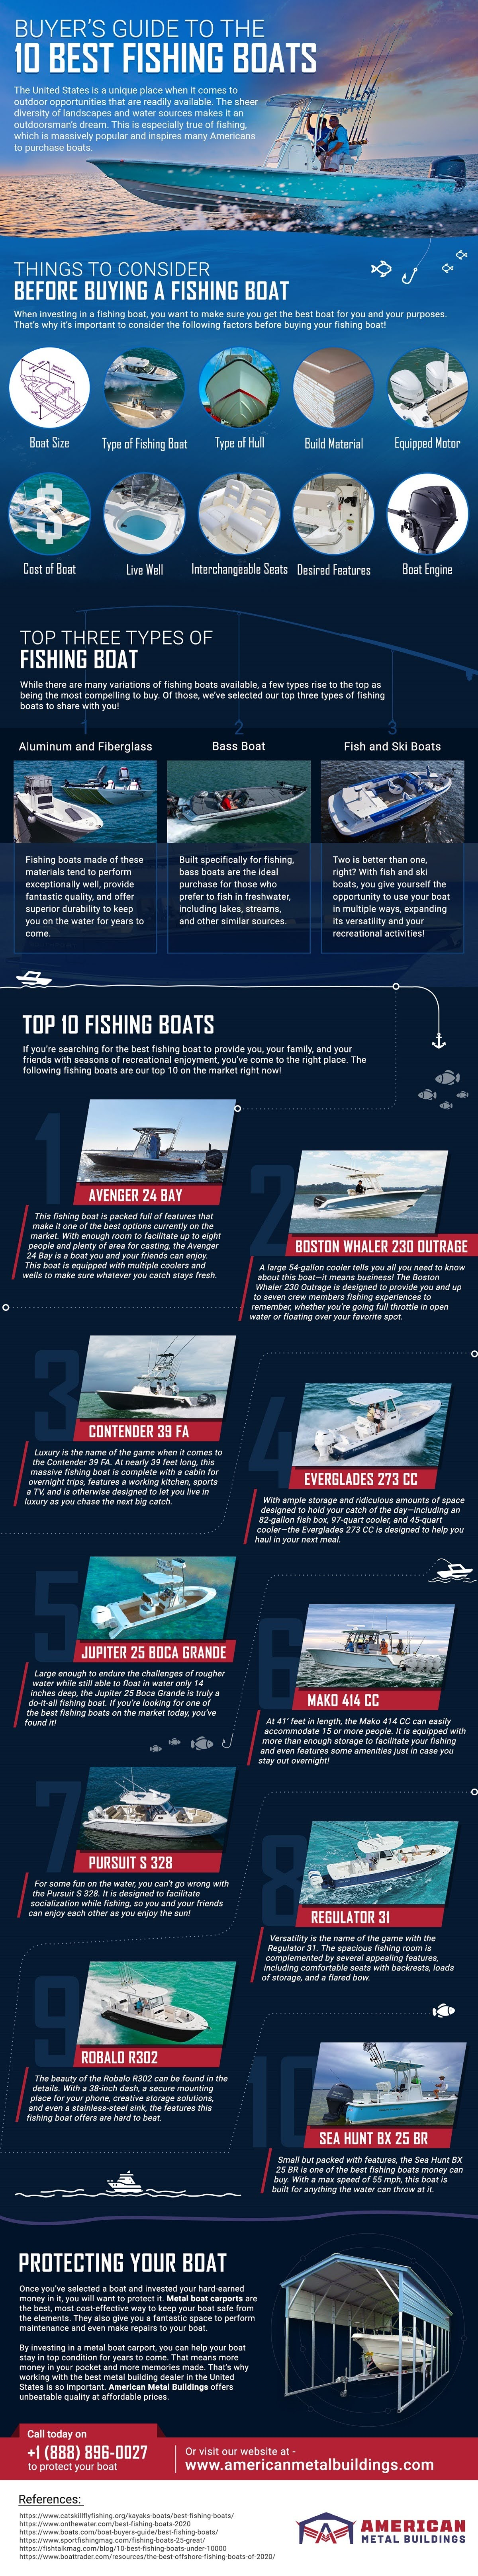 buyers-guide-to-the-10-best-fishing-boats-infographic